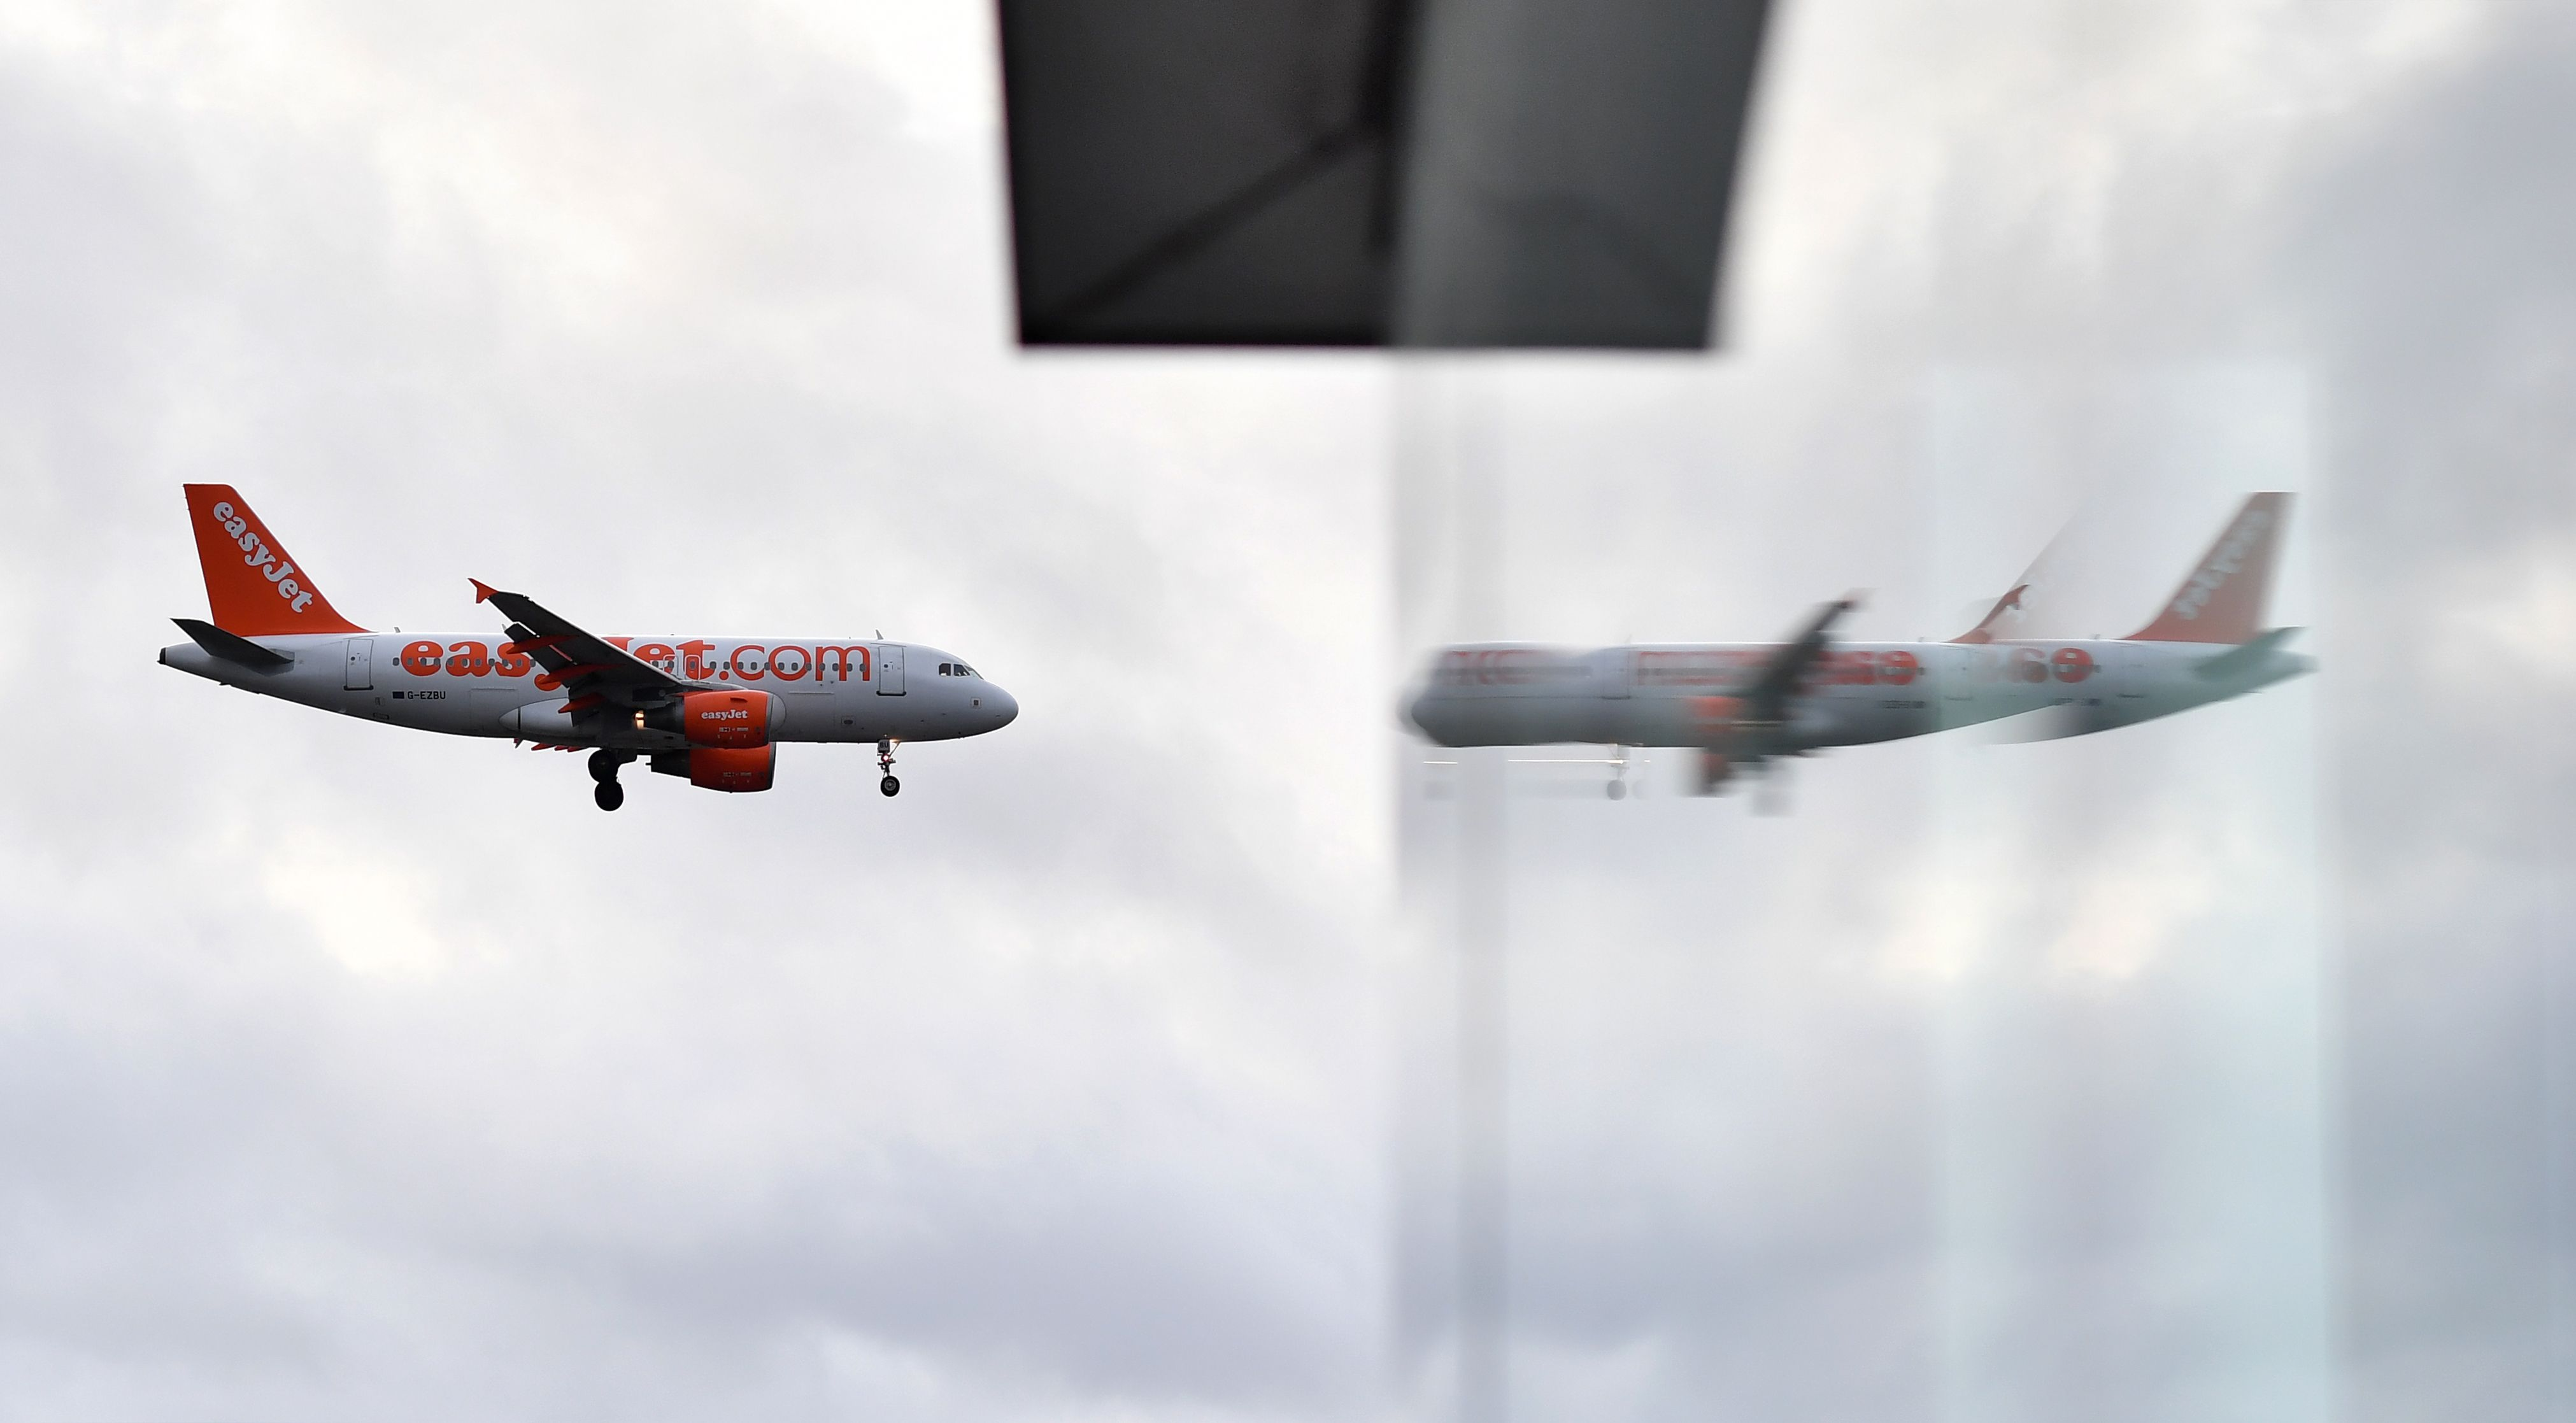 Near-miss: Passenger jet 'narrowly avoided' hitting drone at Gatwick airport in April